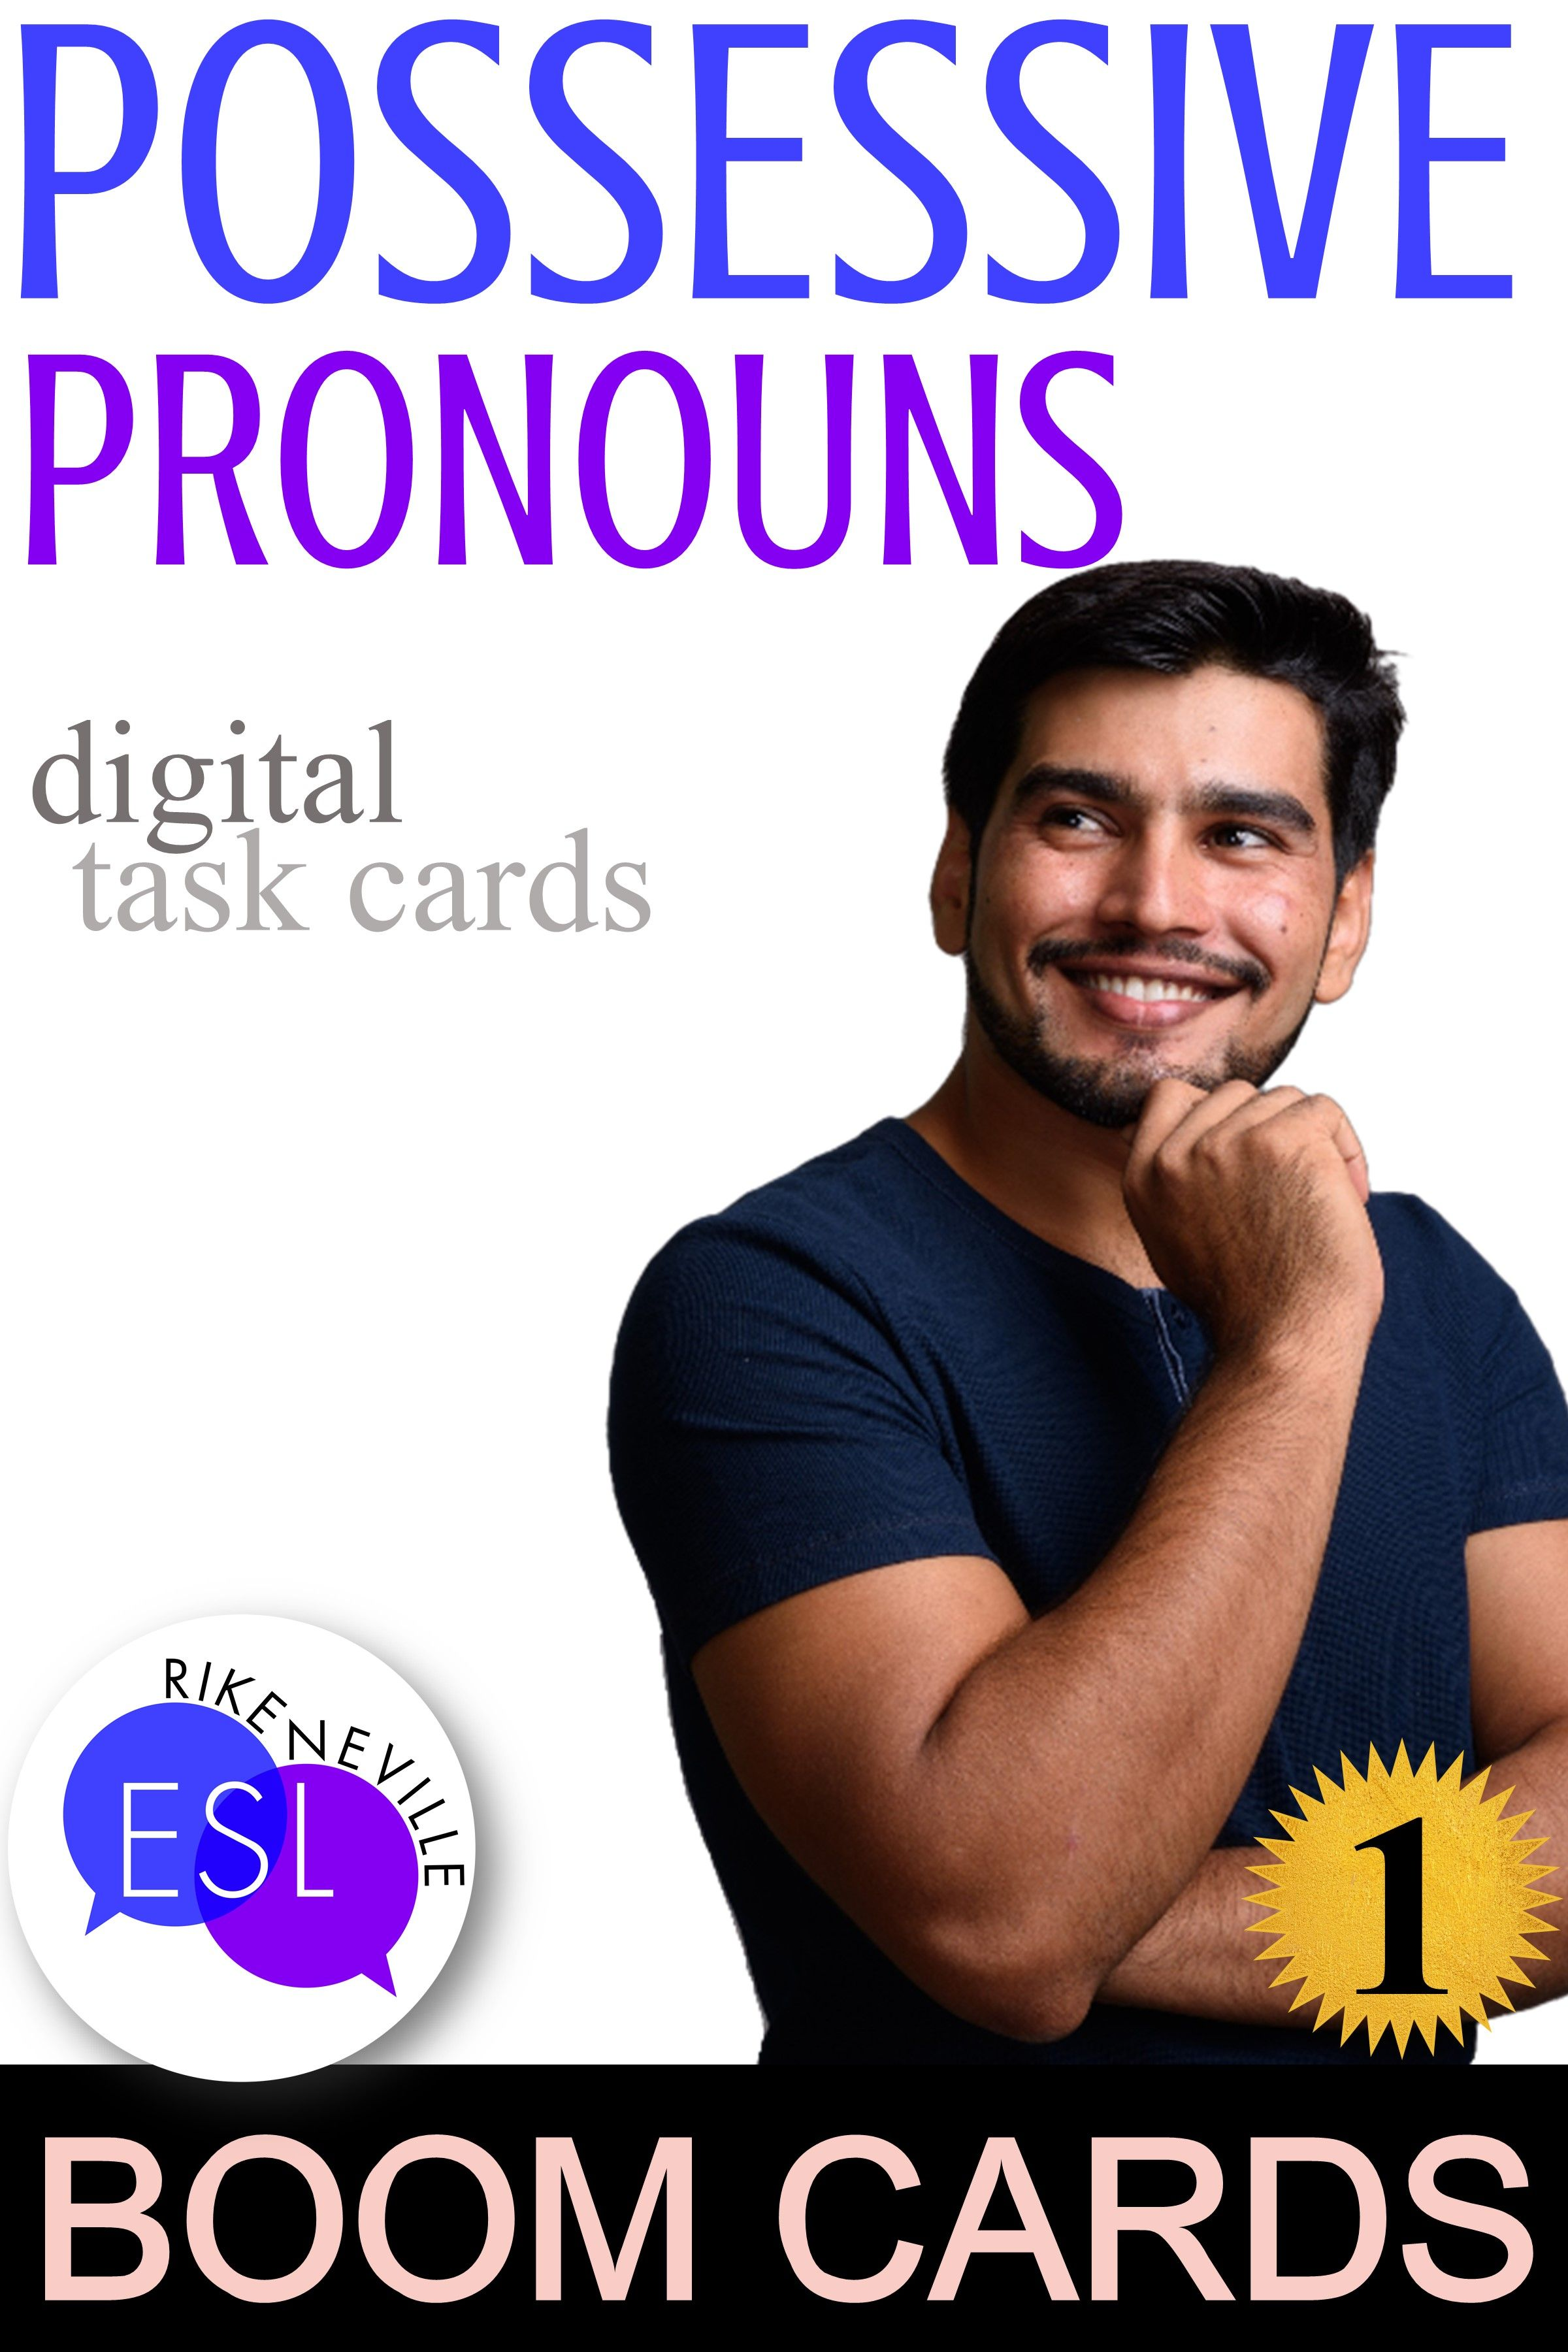 Esl Students Easily Confuse Possessive Pronouns And